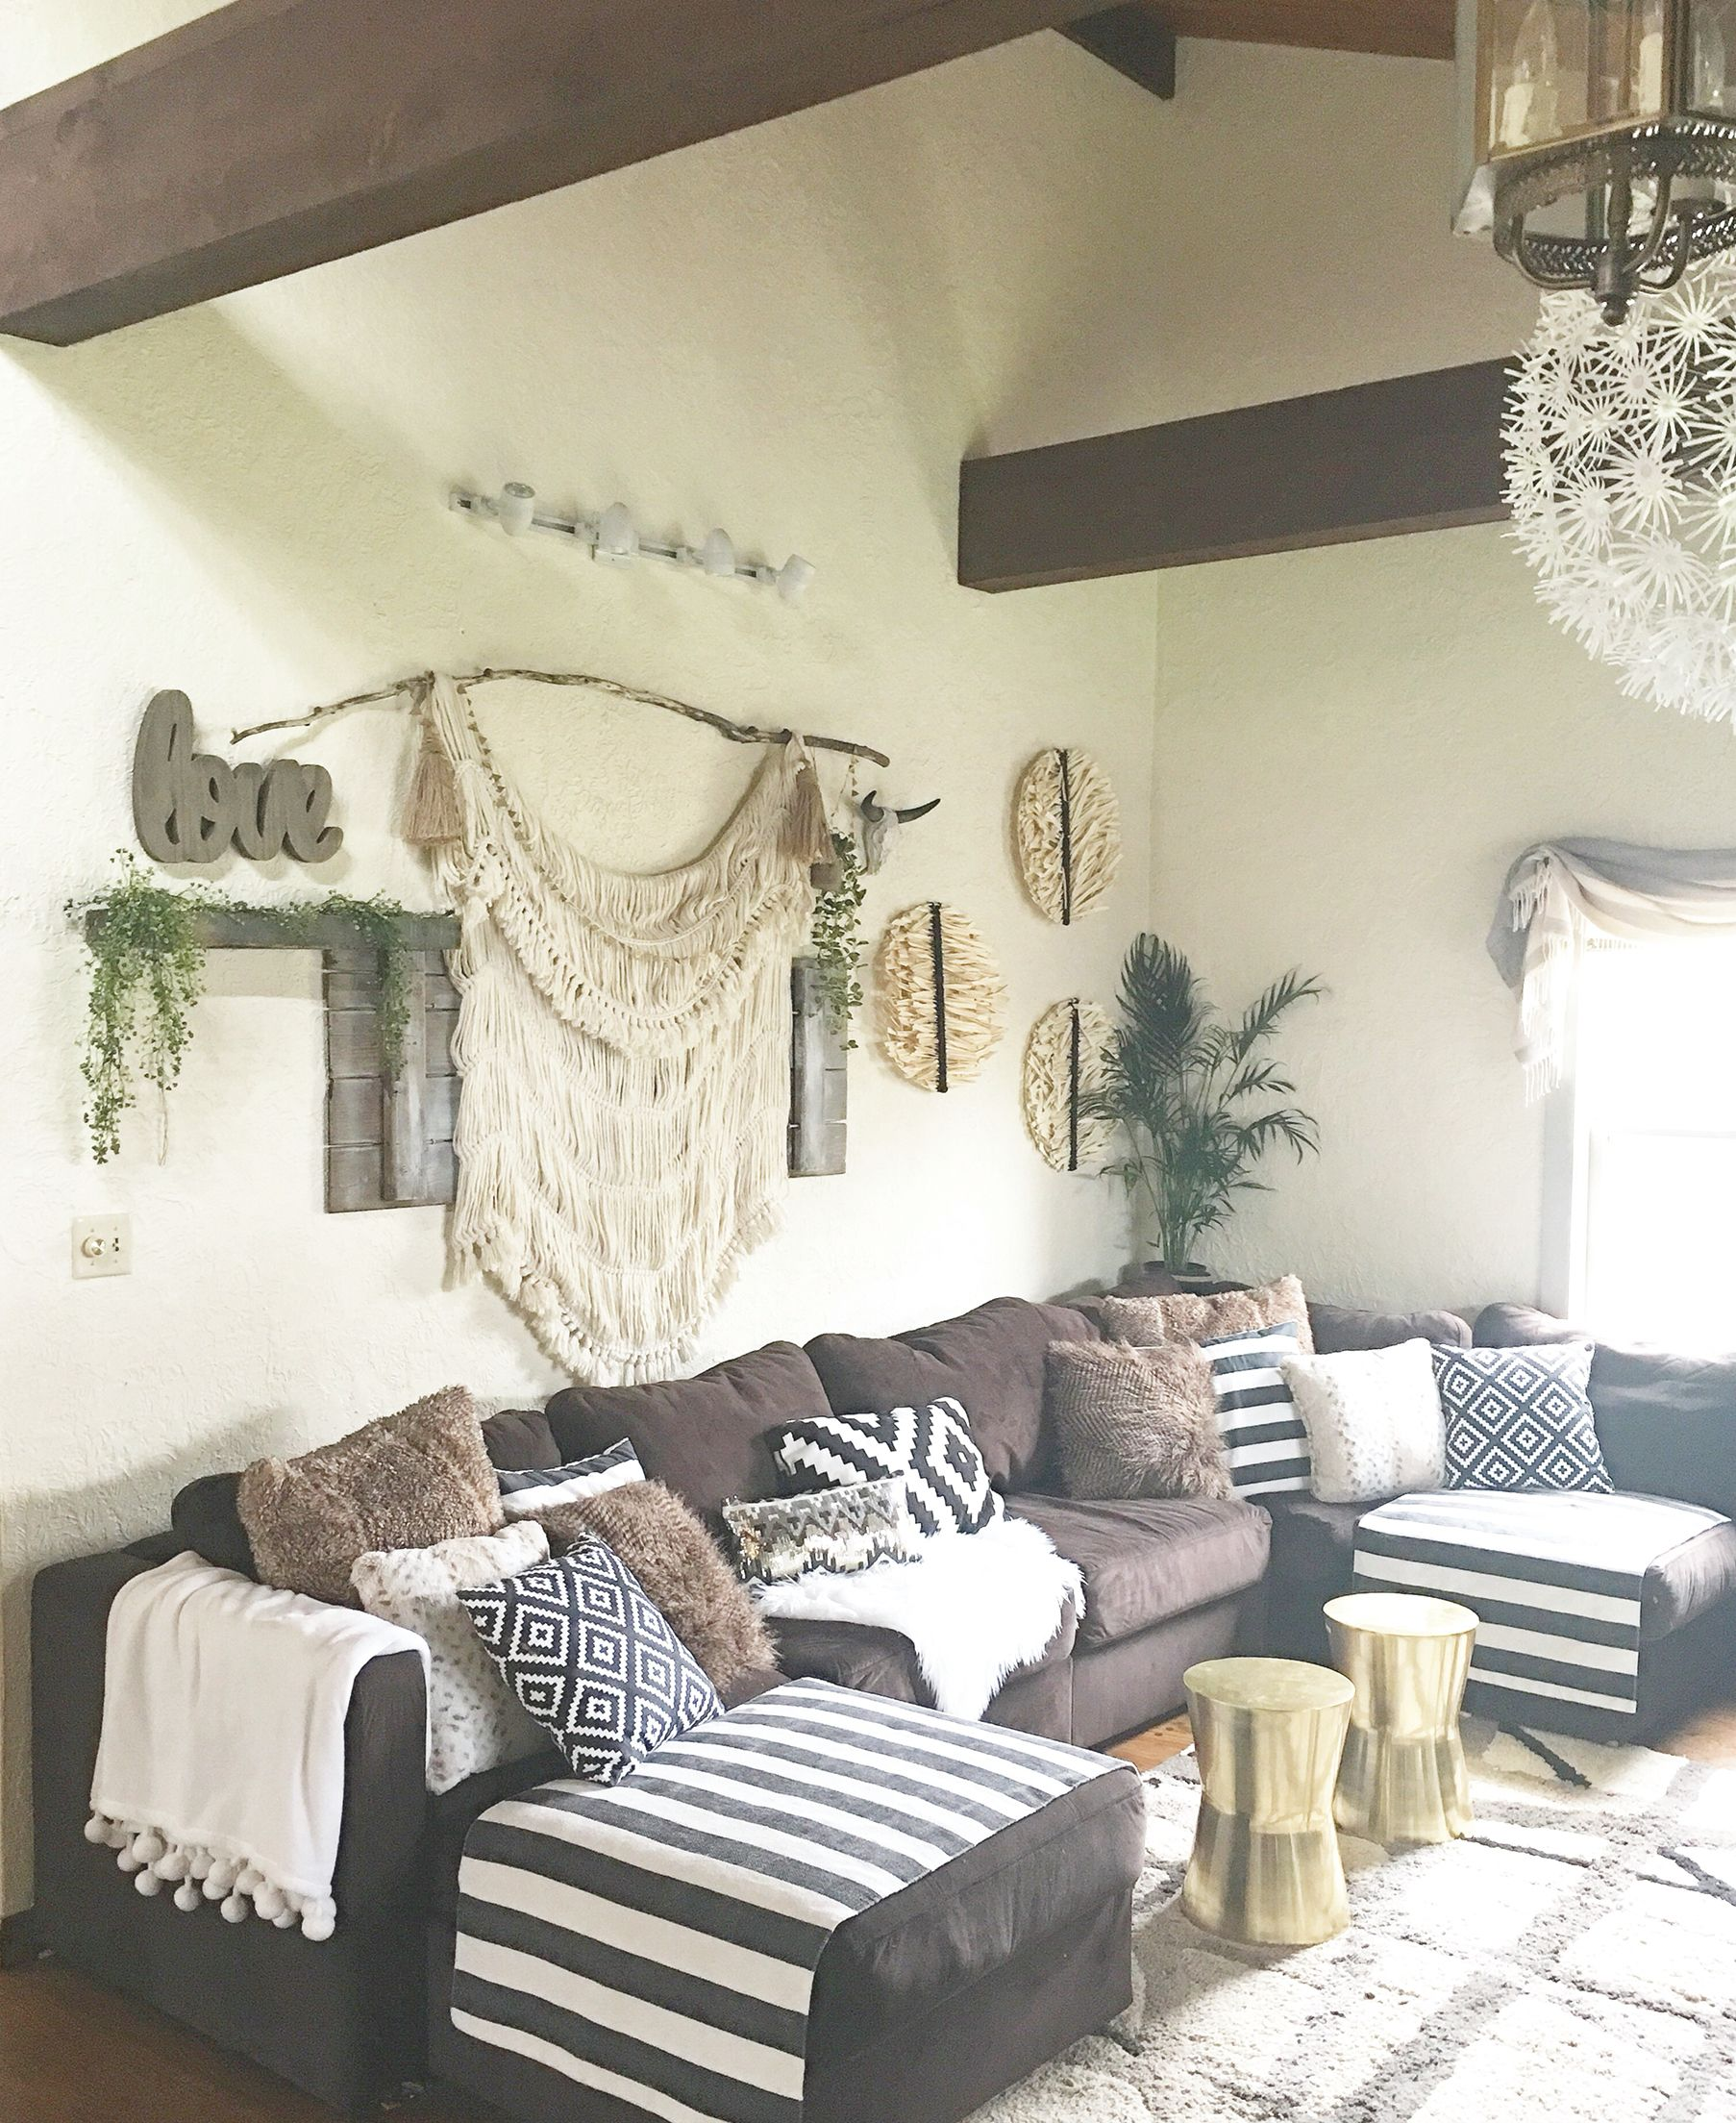 boho rustic glam living room | - cozy little space - | pinterest